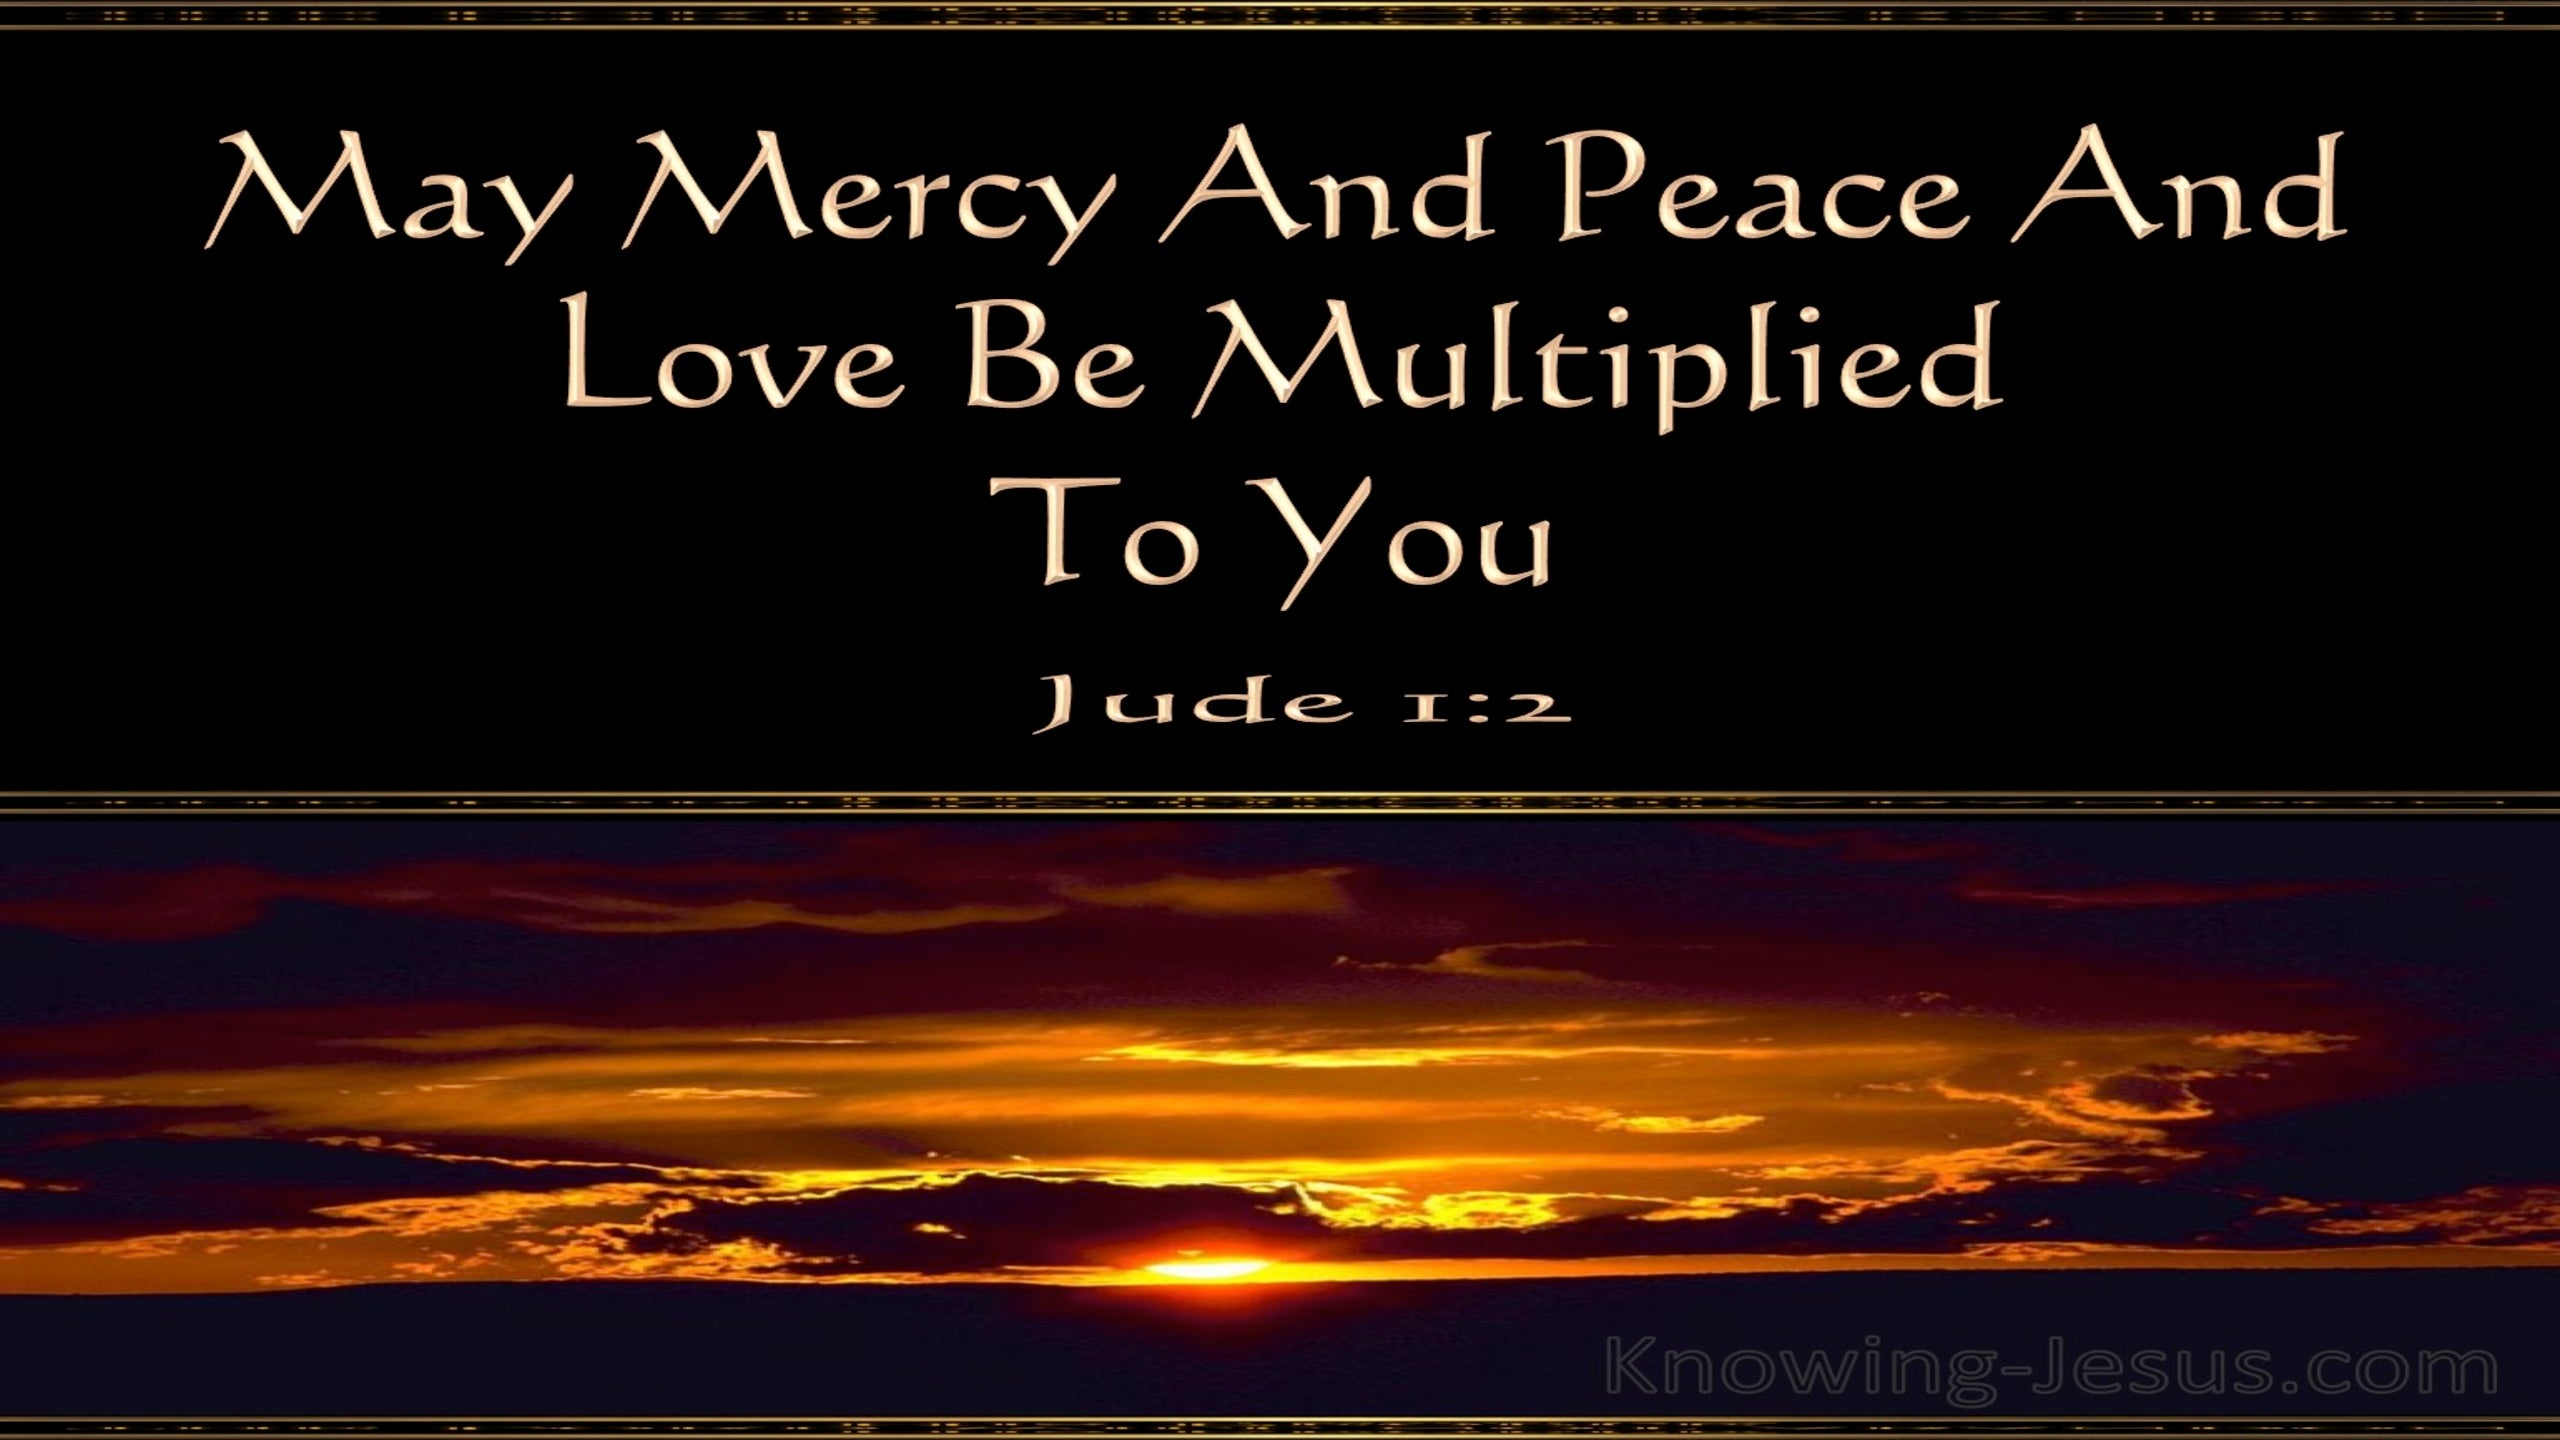 Jude 1:2 Mercy And Peace And Love Be Multiplied To You (black)